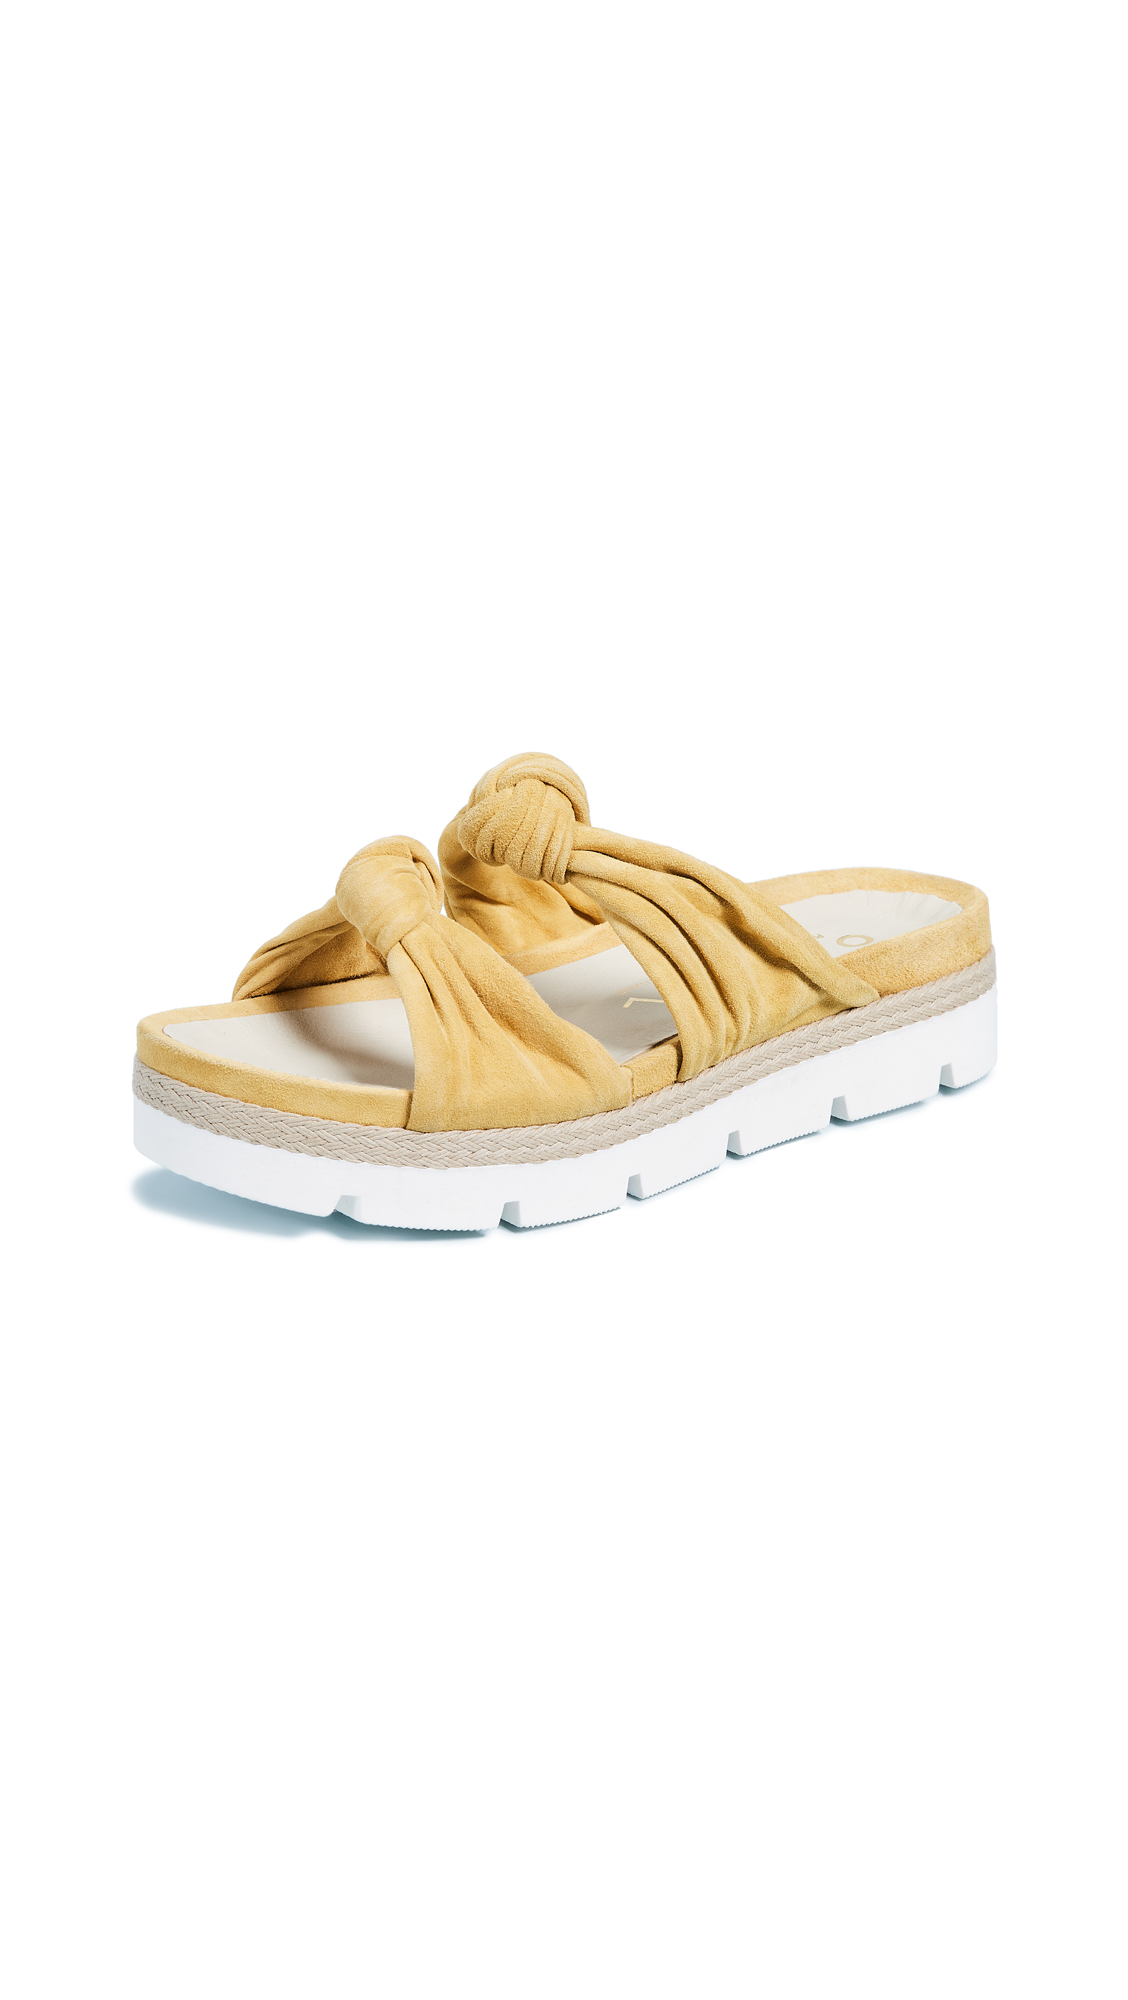 Ouigal Tessa Knotted Slides - Yellow